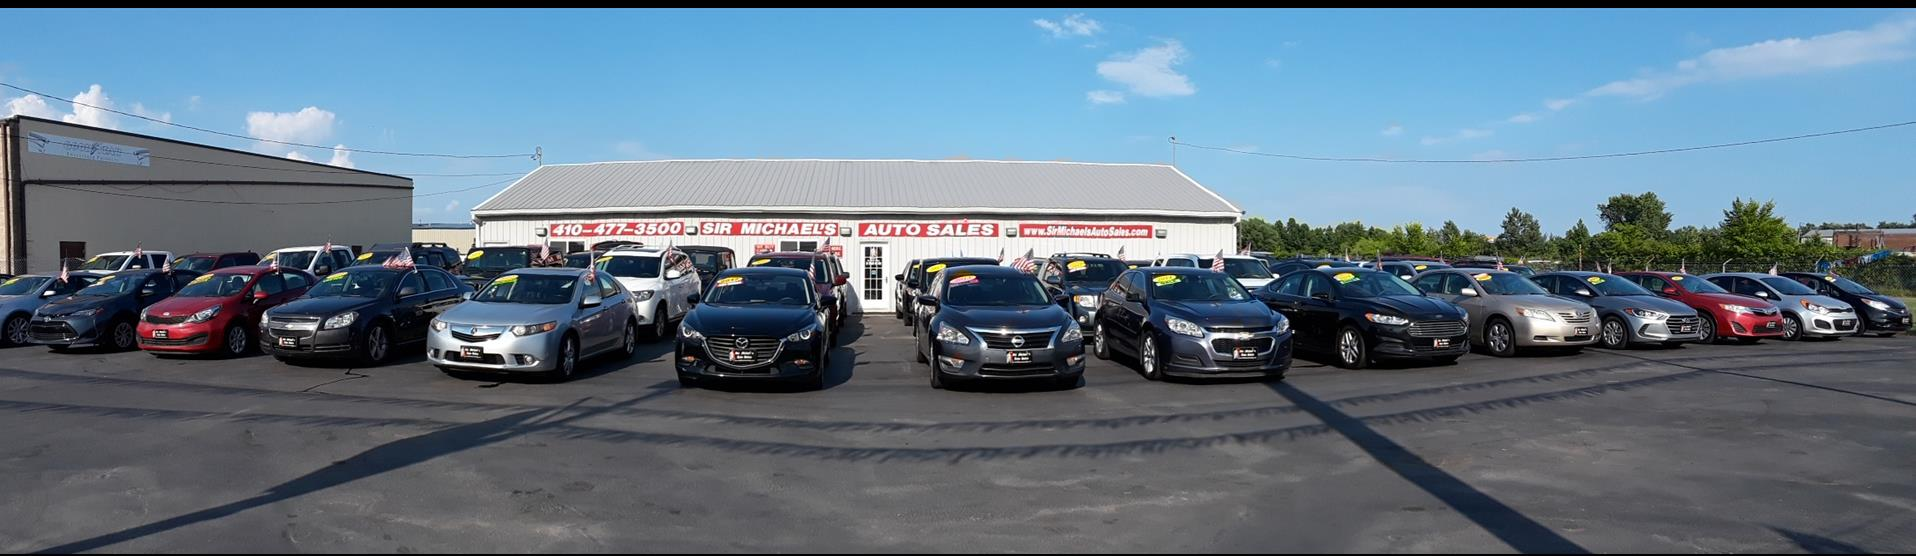 Used Cars Baltimore MD | Used Cars & Trucks MD | Sir